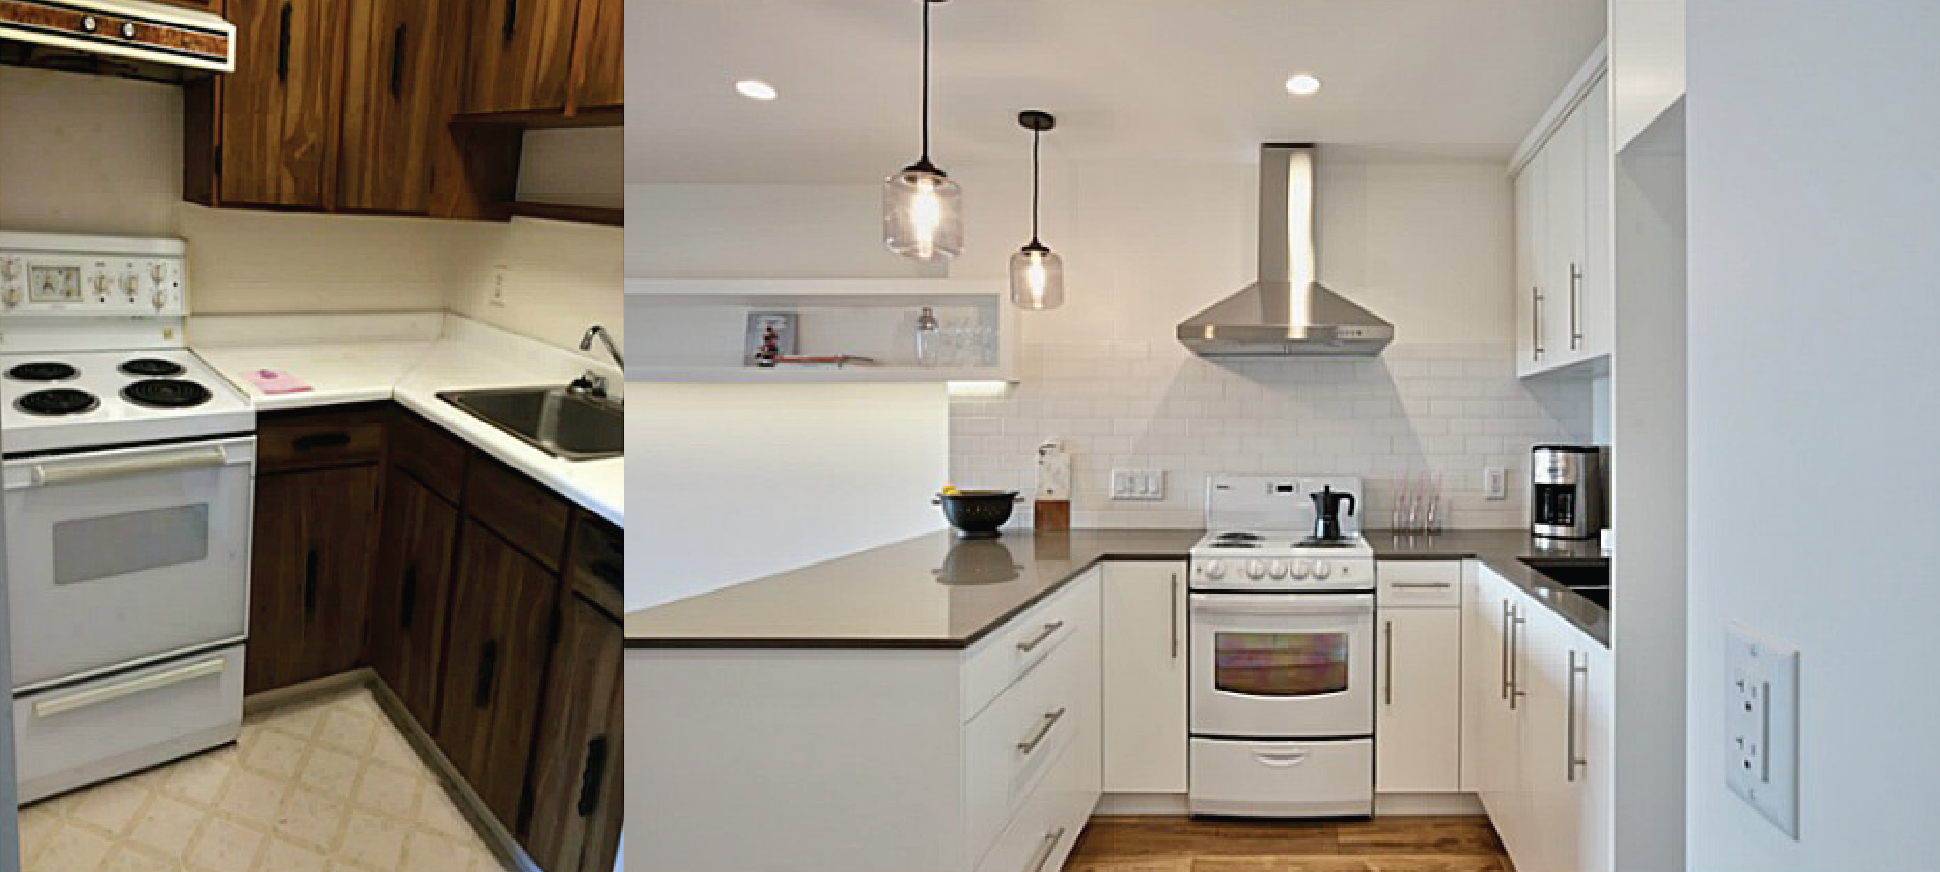 Small Kitchen Remodel Before And After For Stunning And Fresh Outlook Of Your